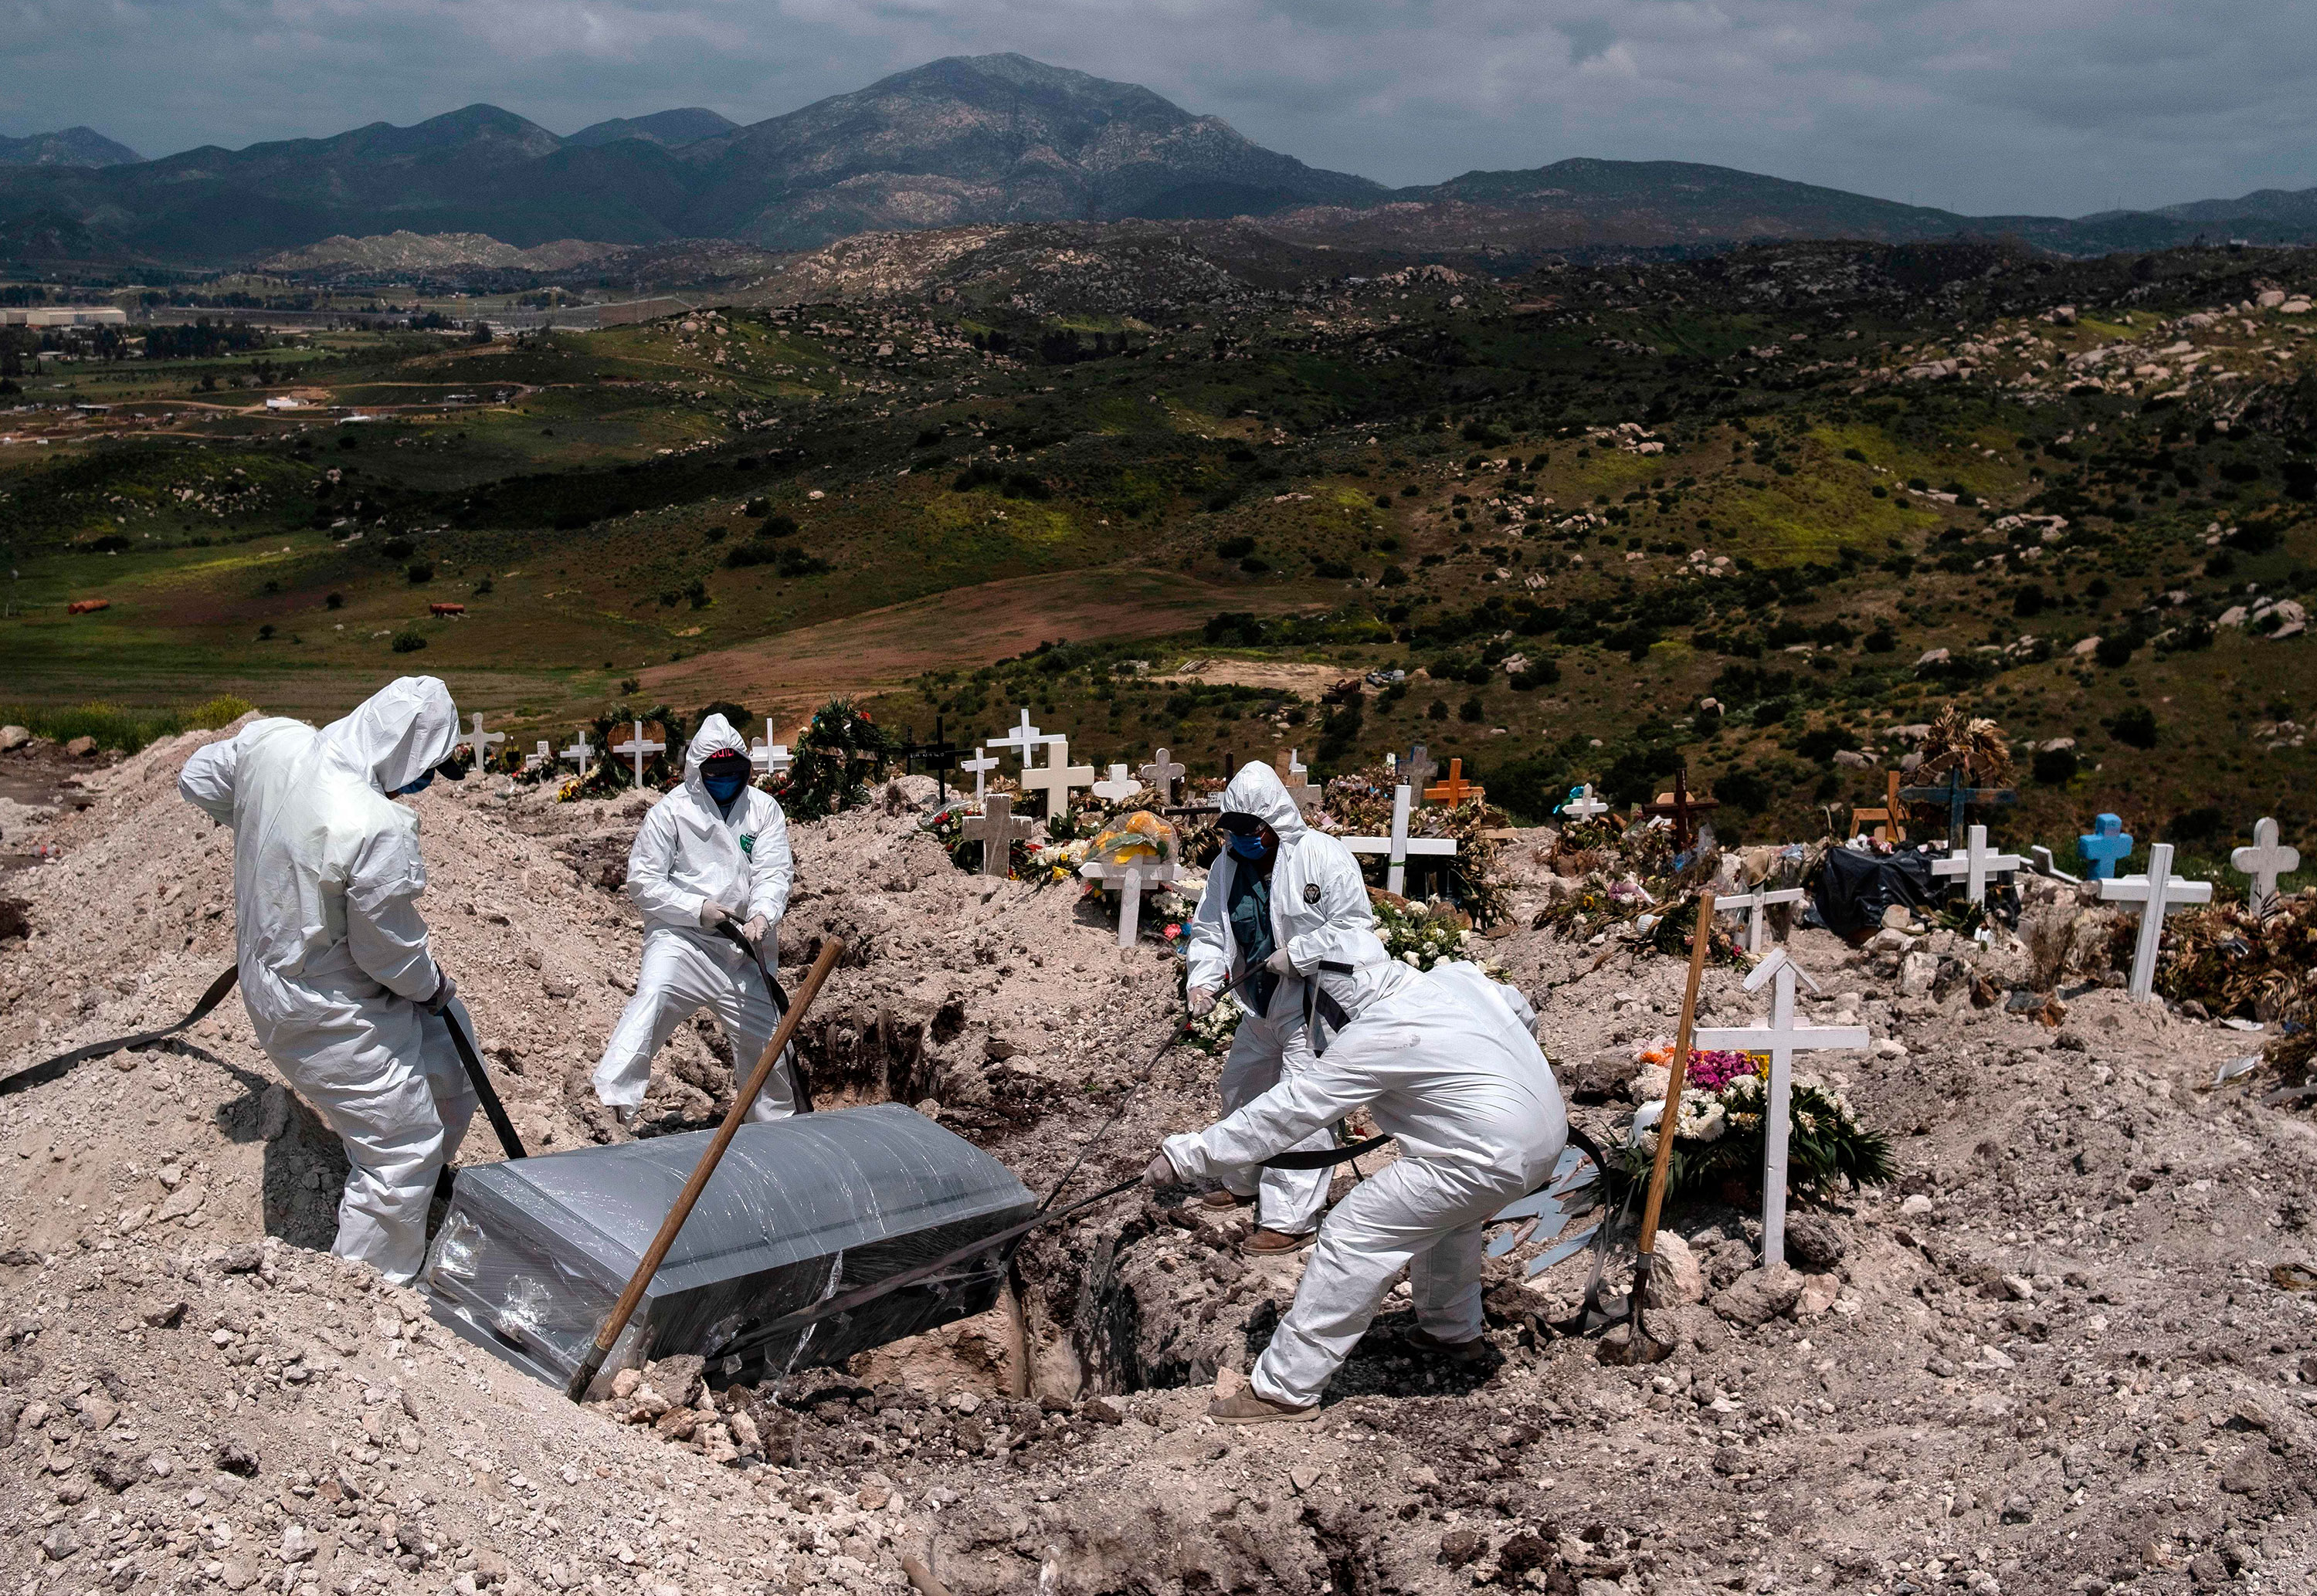 Cementery workers bury a coronavirus victim at a cemetery in Tijuana, Mexico, on April 21.